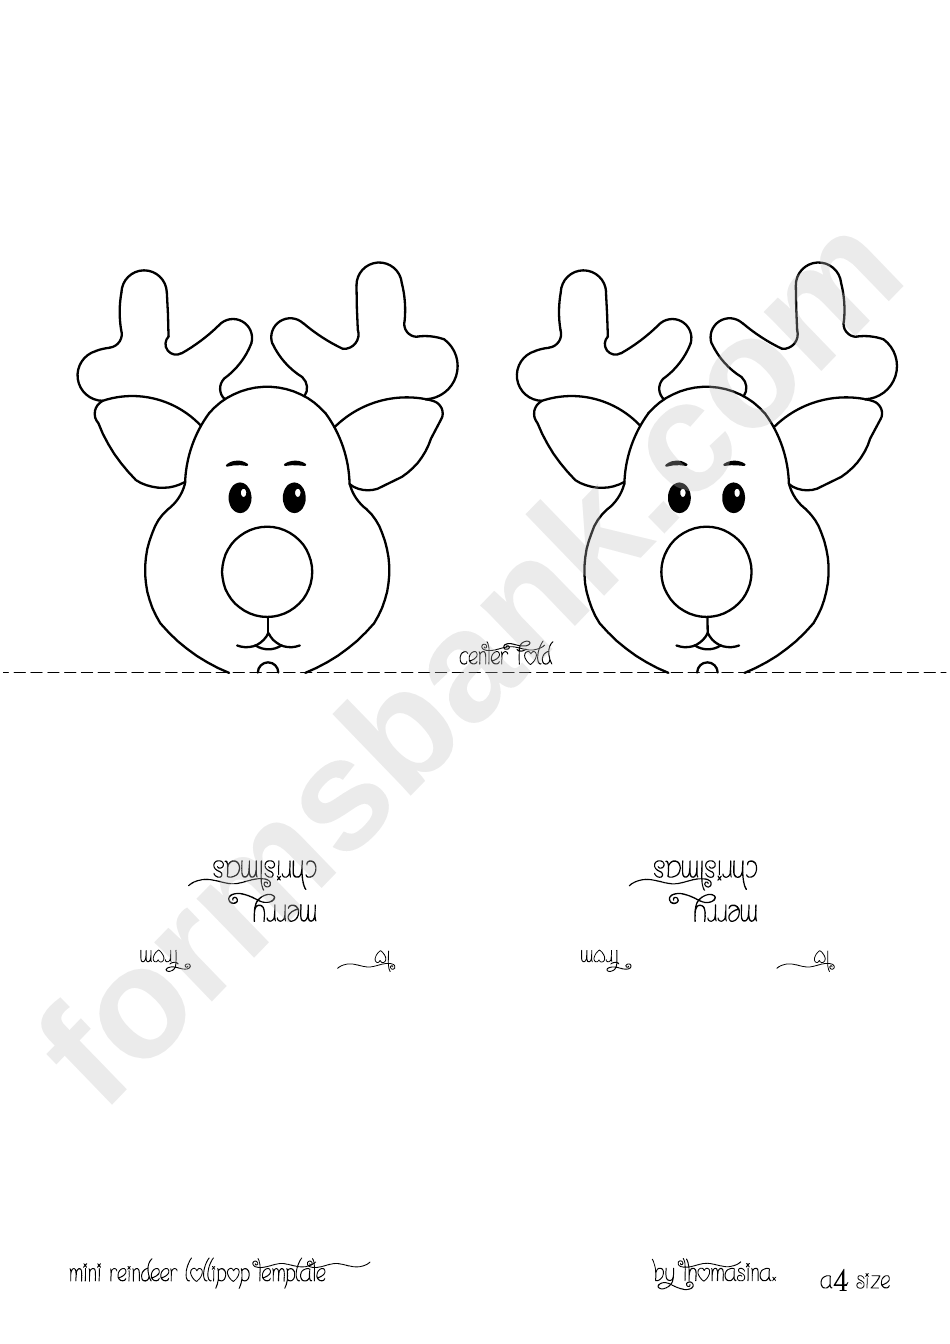 coloring pages reindeer mini - photo#21